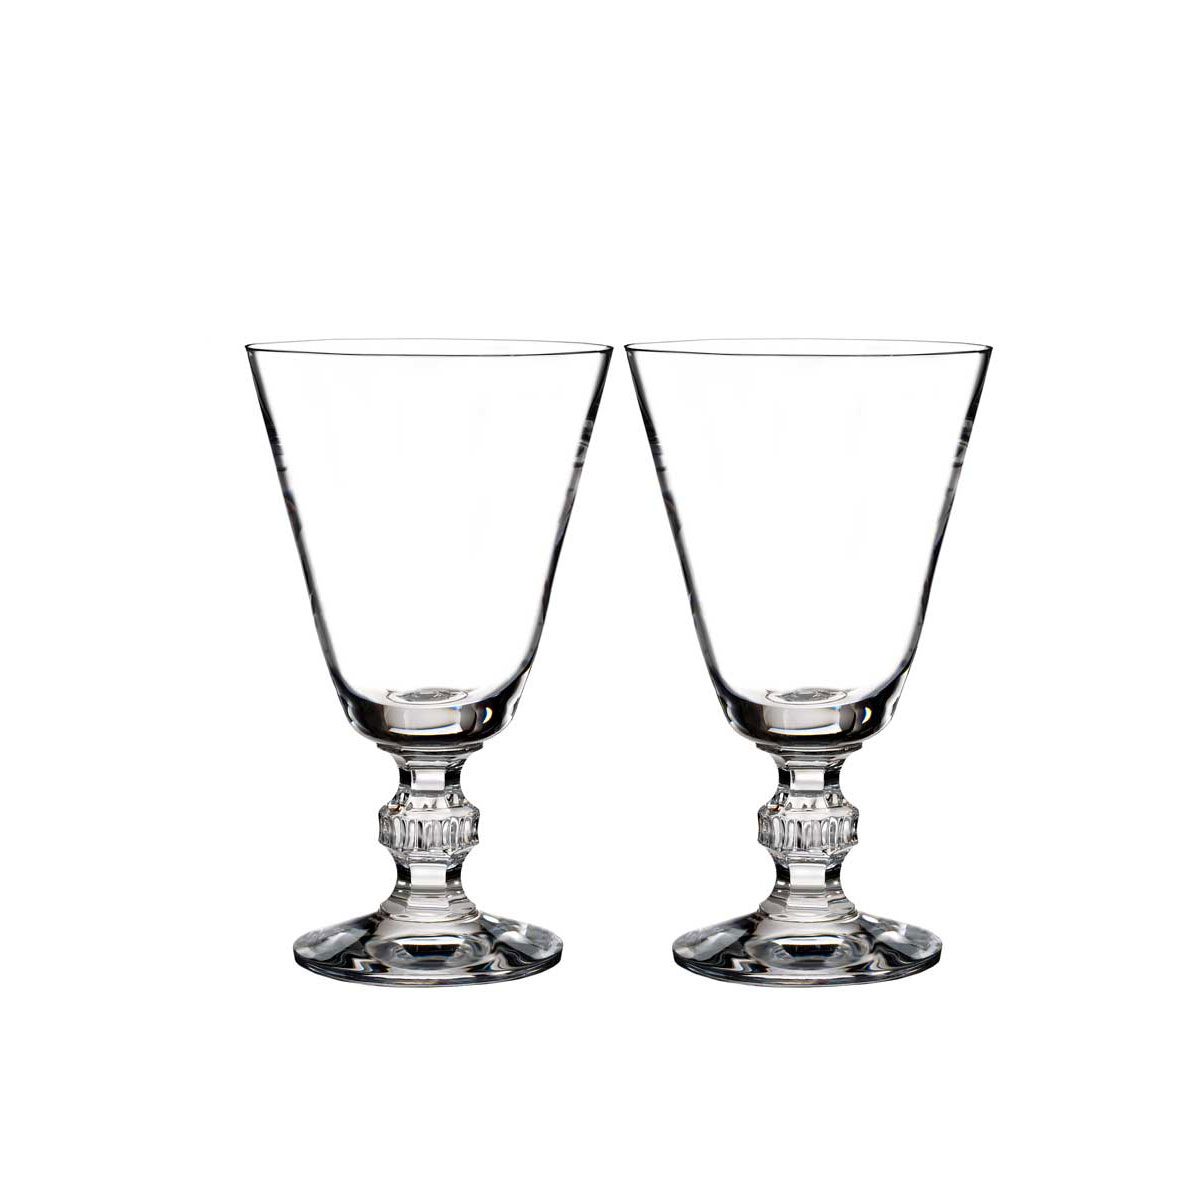 Waterford Crystal, Town and Country Ashton Lane Crystal Wine, Pair